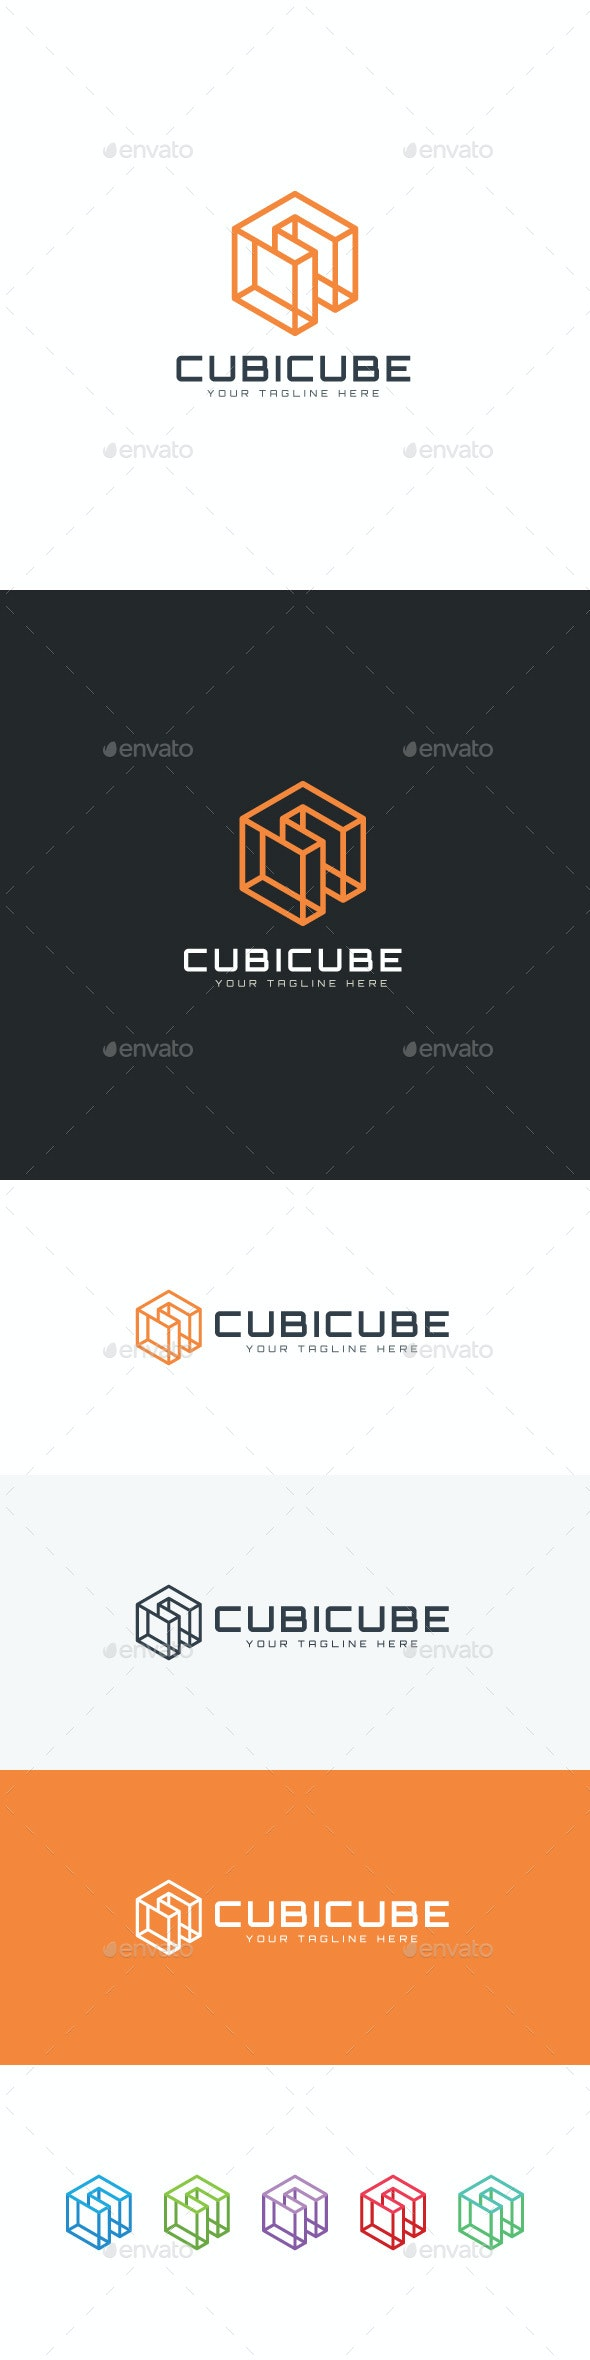 Cubic Cube Logo - 3d Abstract